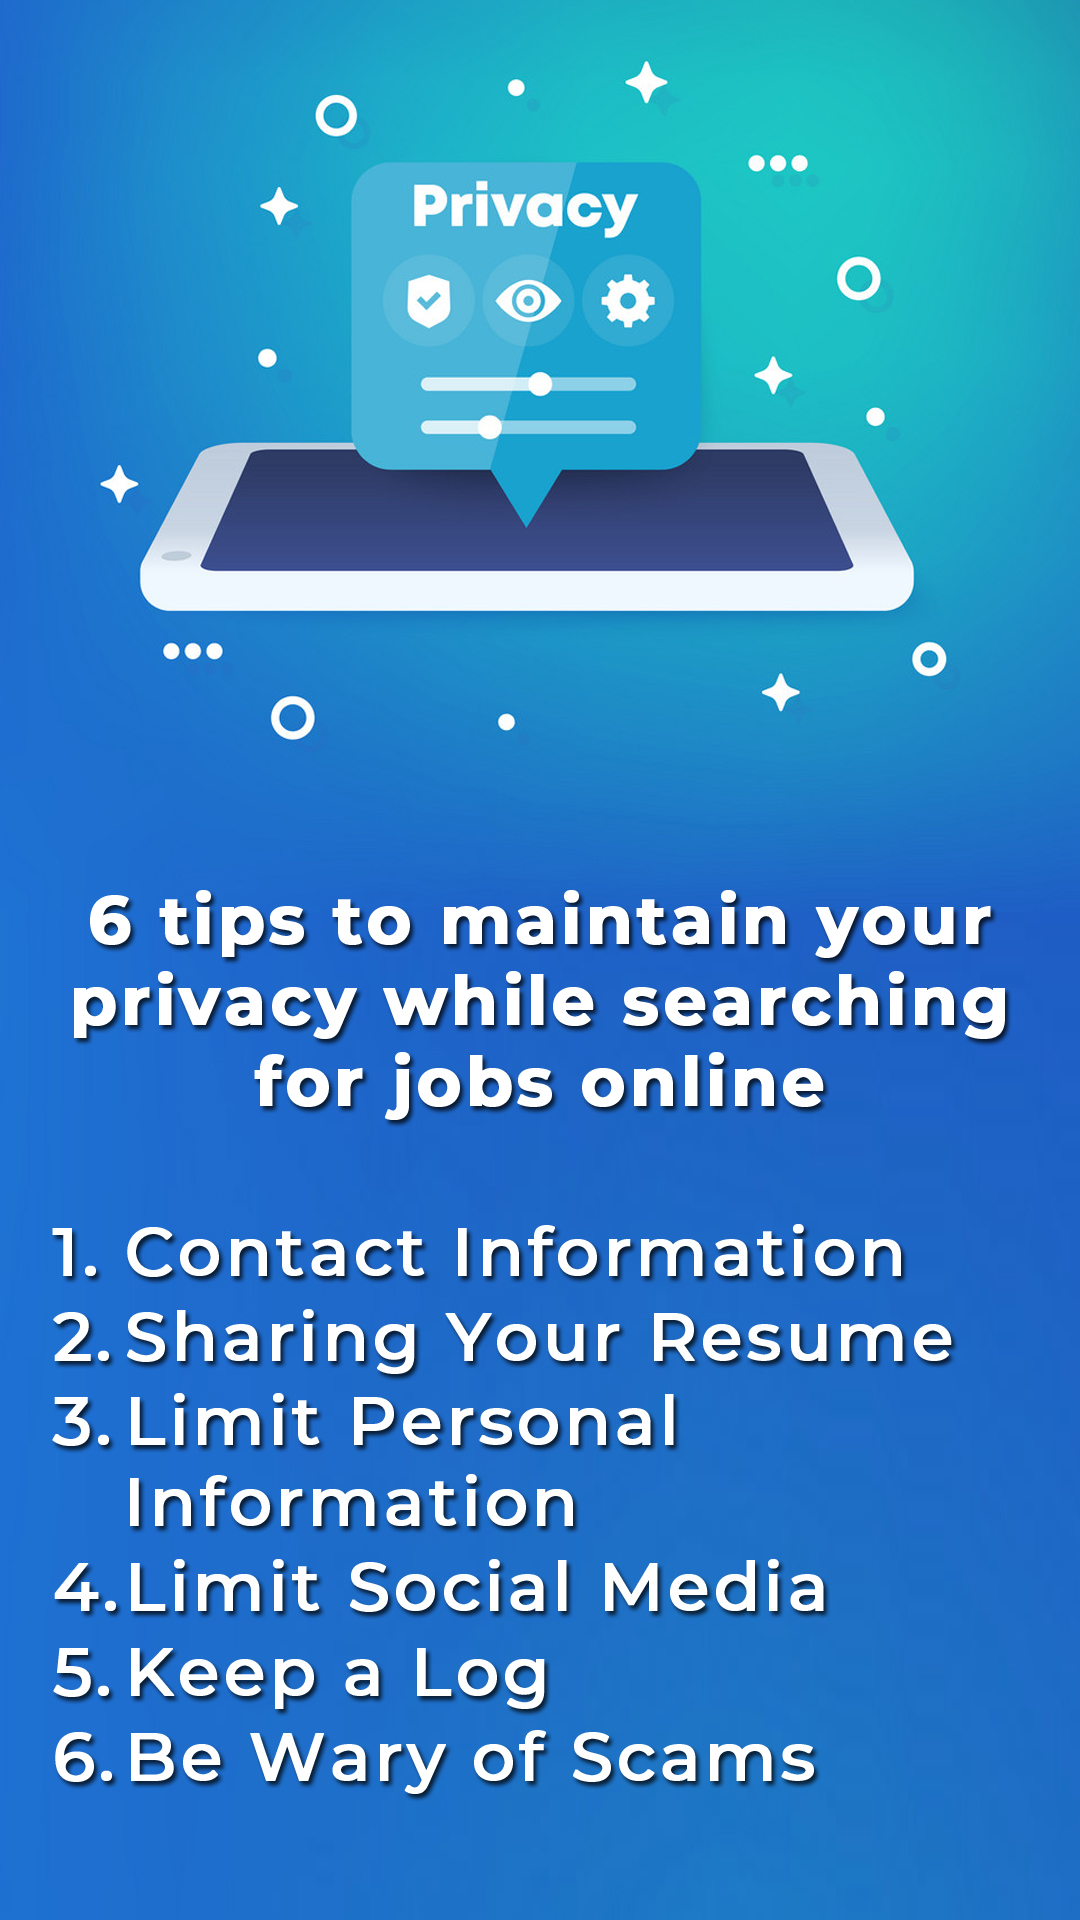 6 Tips To Maintain Your Privacy While Searching For Jobs Online